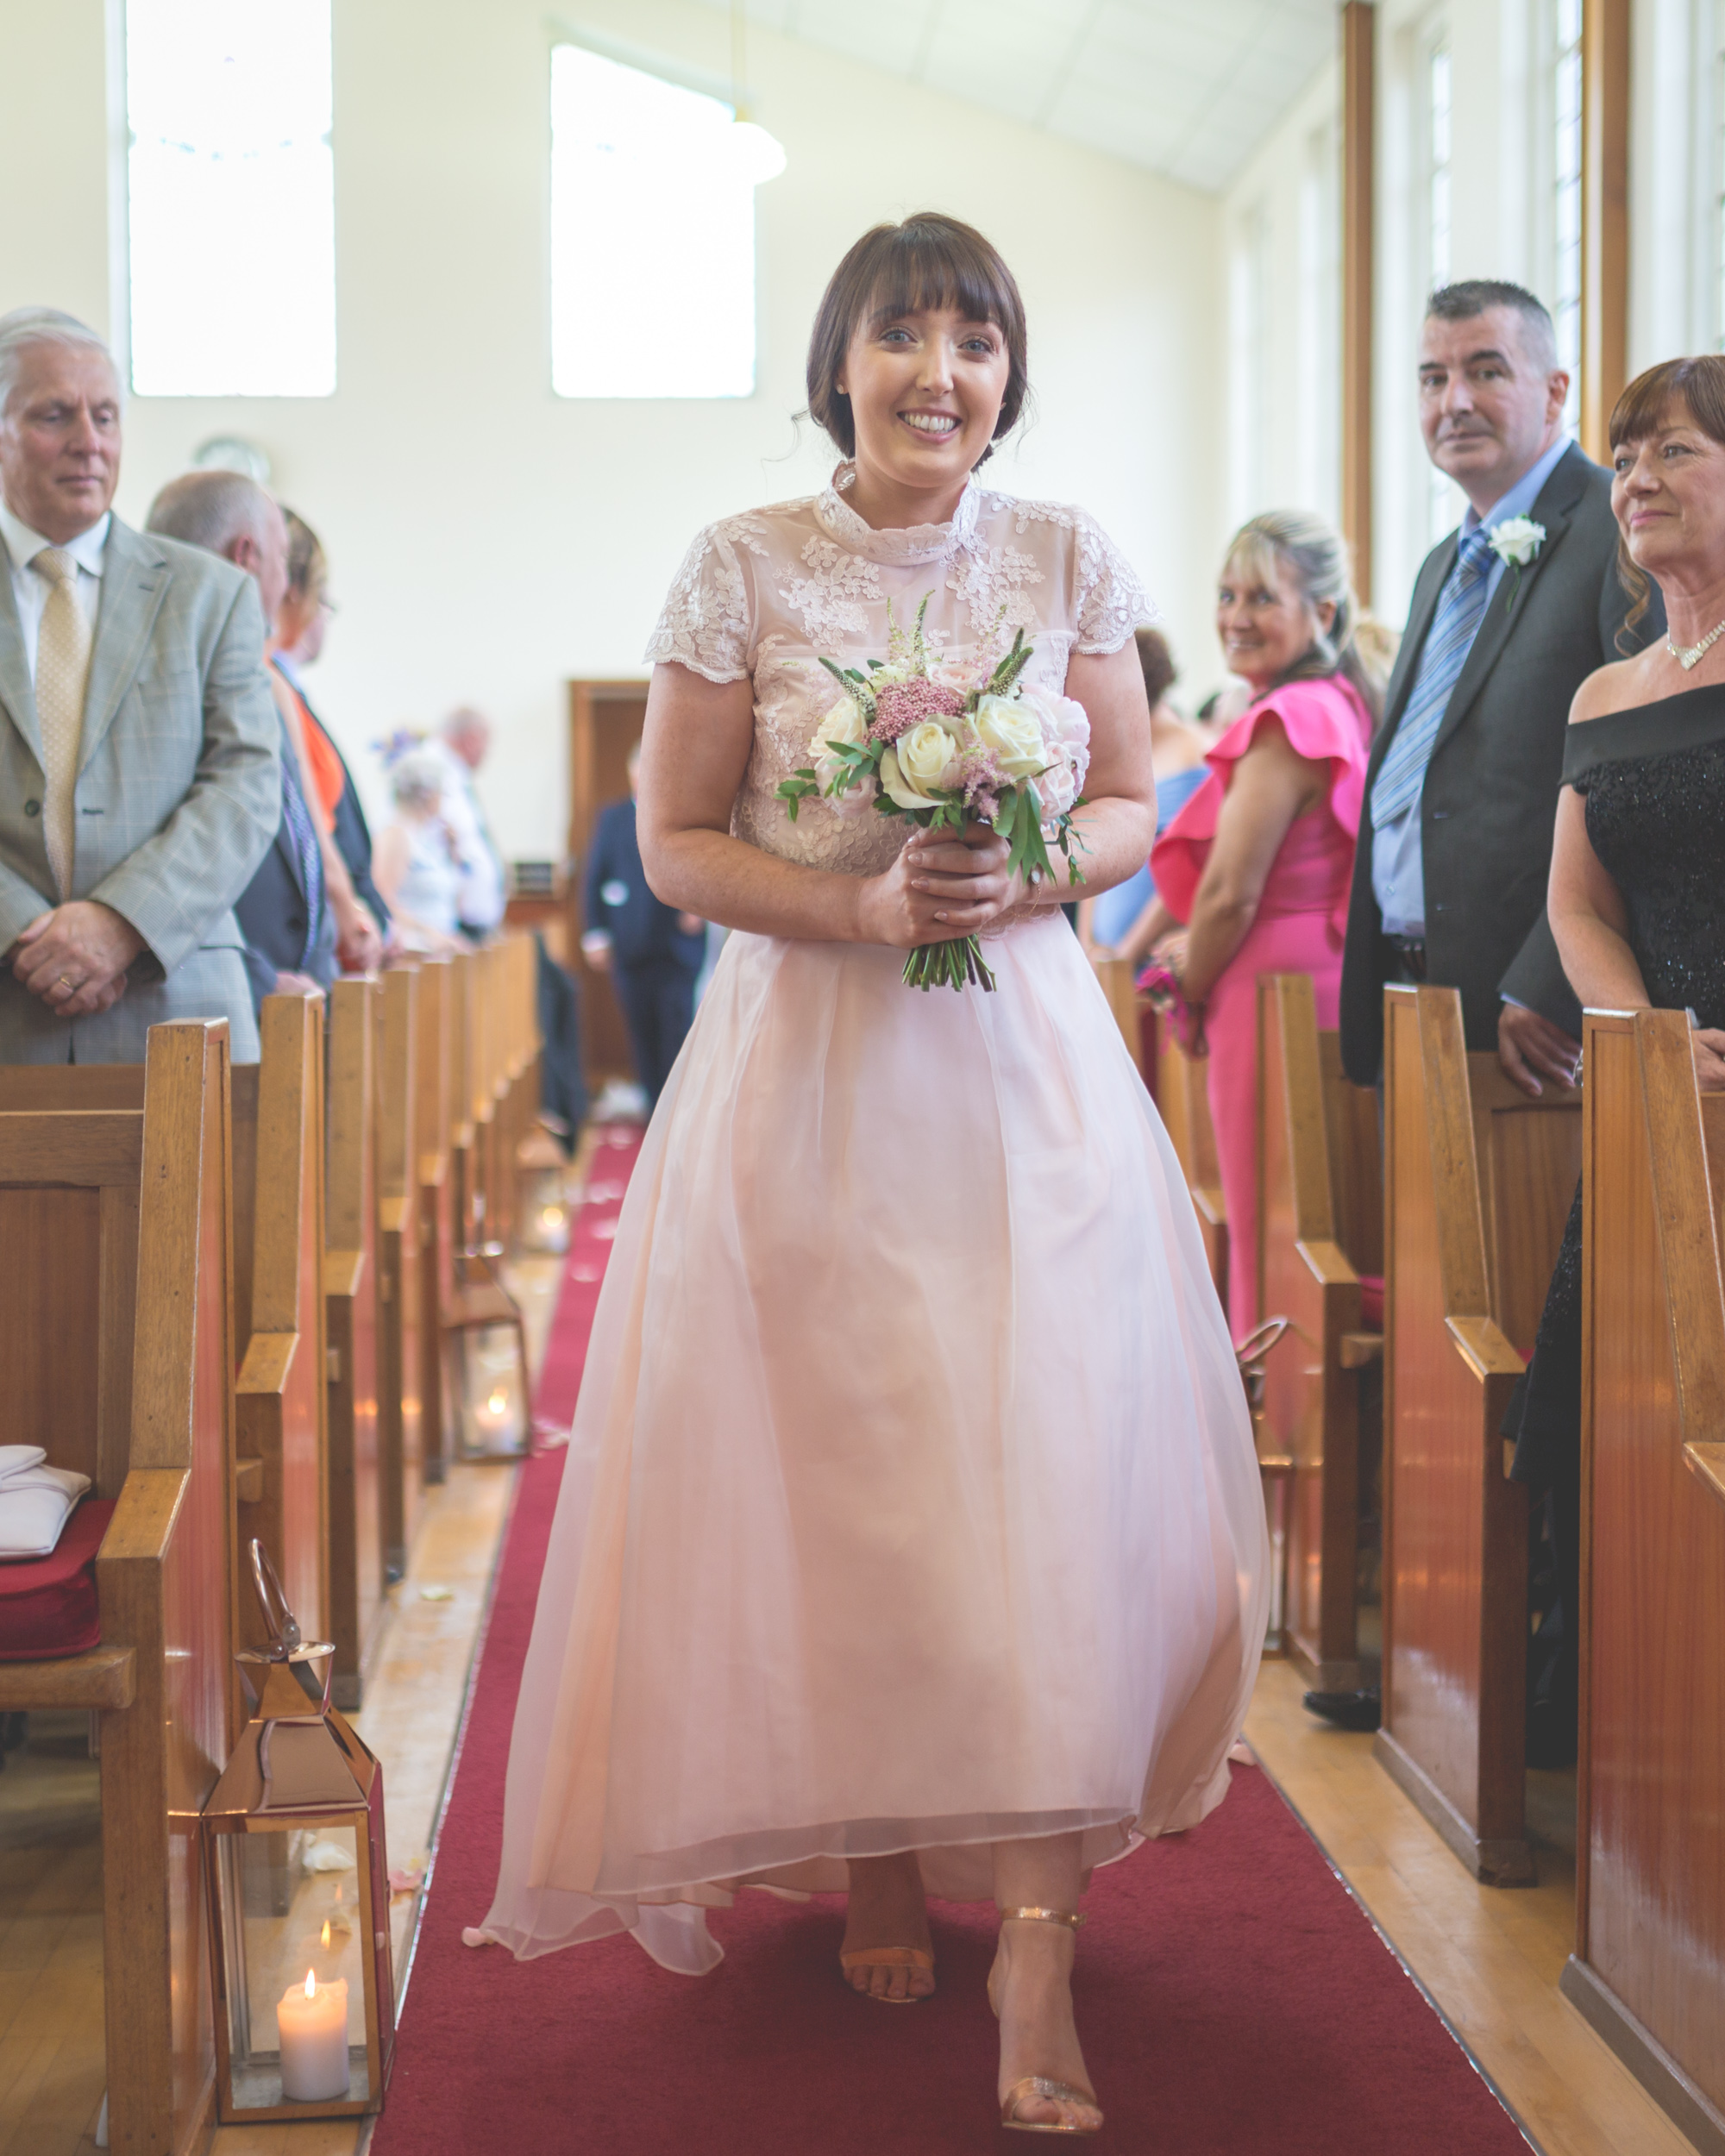 Brian McEwan | Northern Ireland Wedding Photographer | Rebecca & Michael | Ceremony-15.jpg